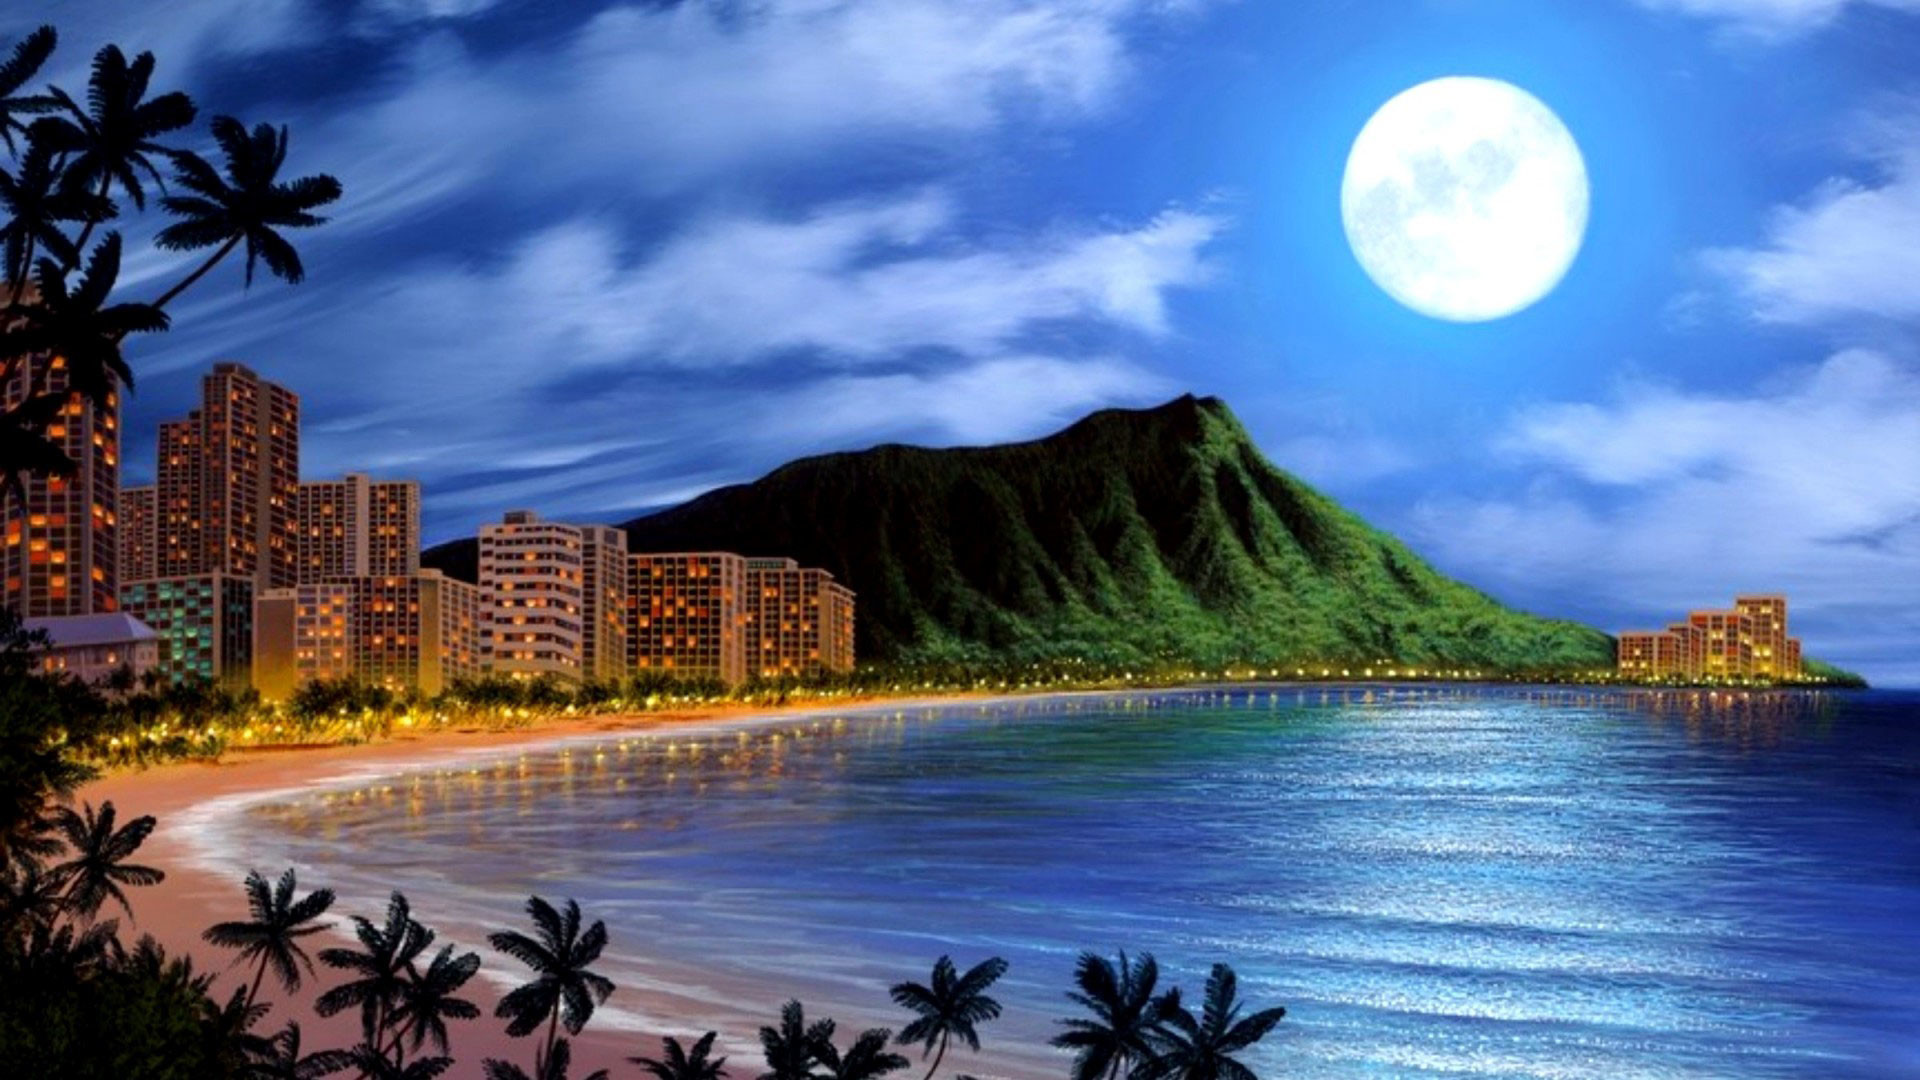 1920x1080 hd pics photos awesome beach buildings night sea moon nice hd quality desktop  background wallpaper